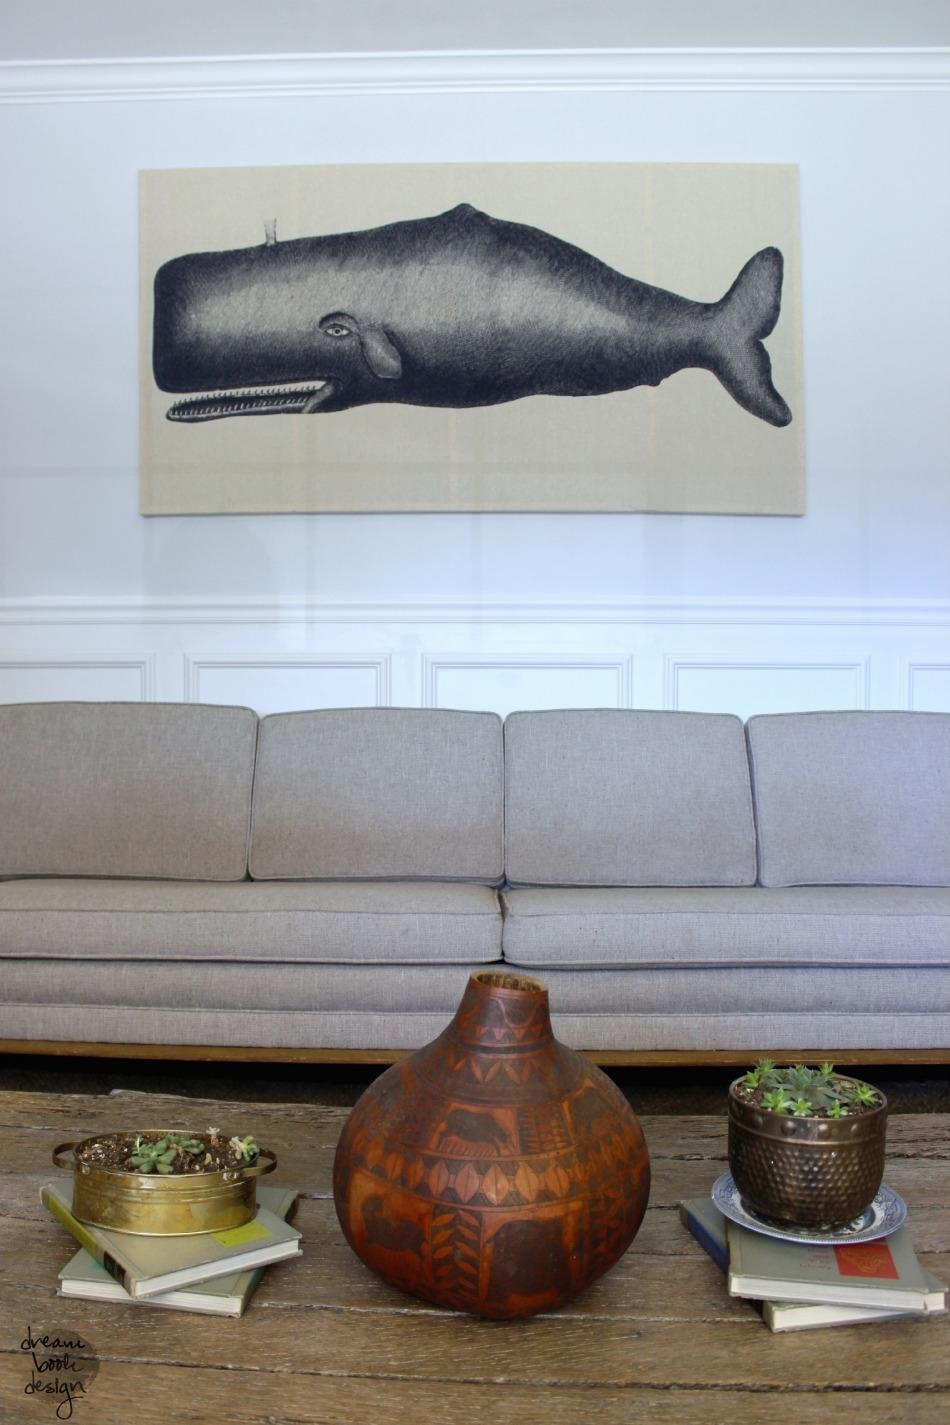 Remodelaholic | 60 Budget-Friendly Diy Large Wall Decor Ideas pertaining to Oversized Wall Art